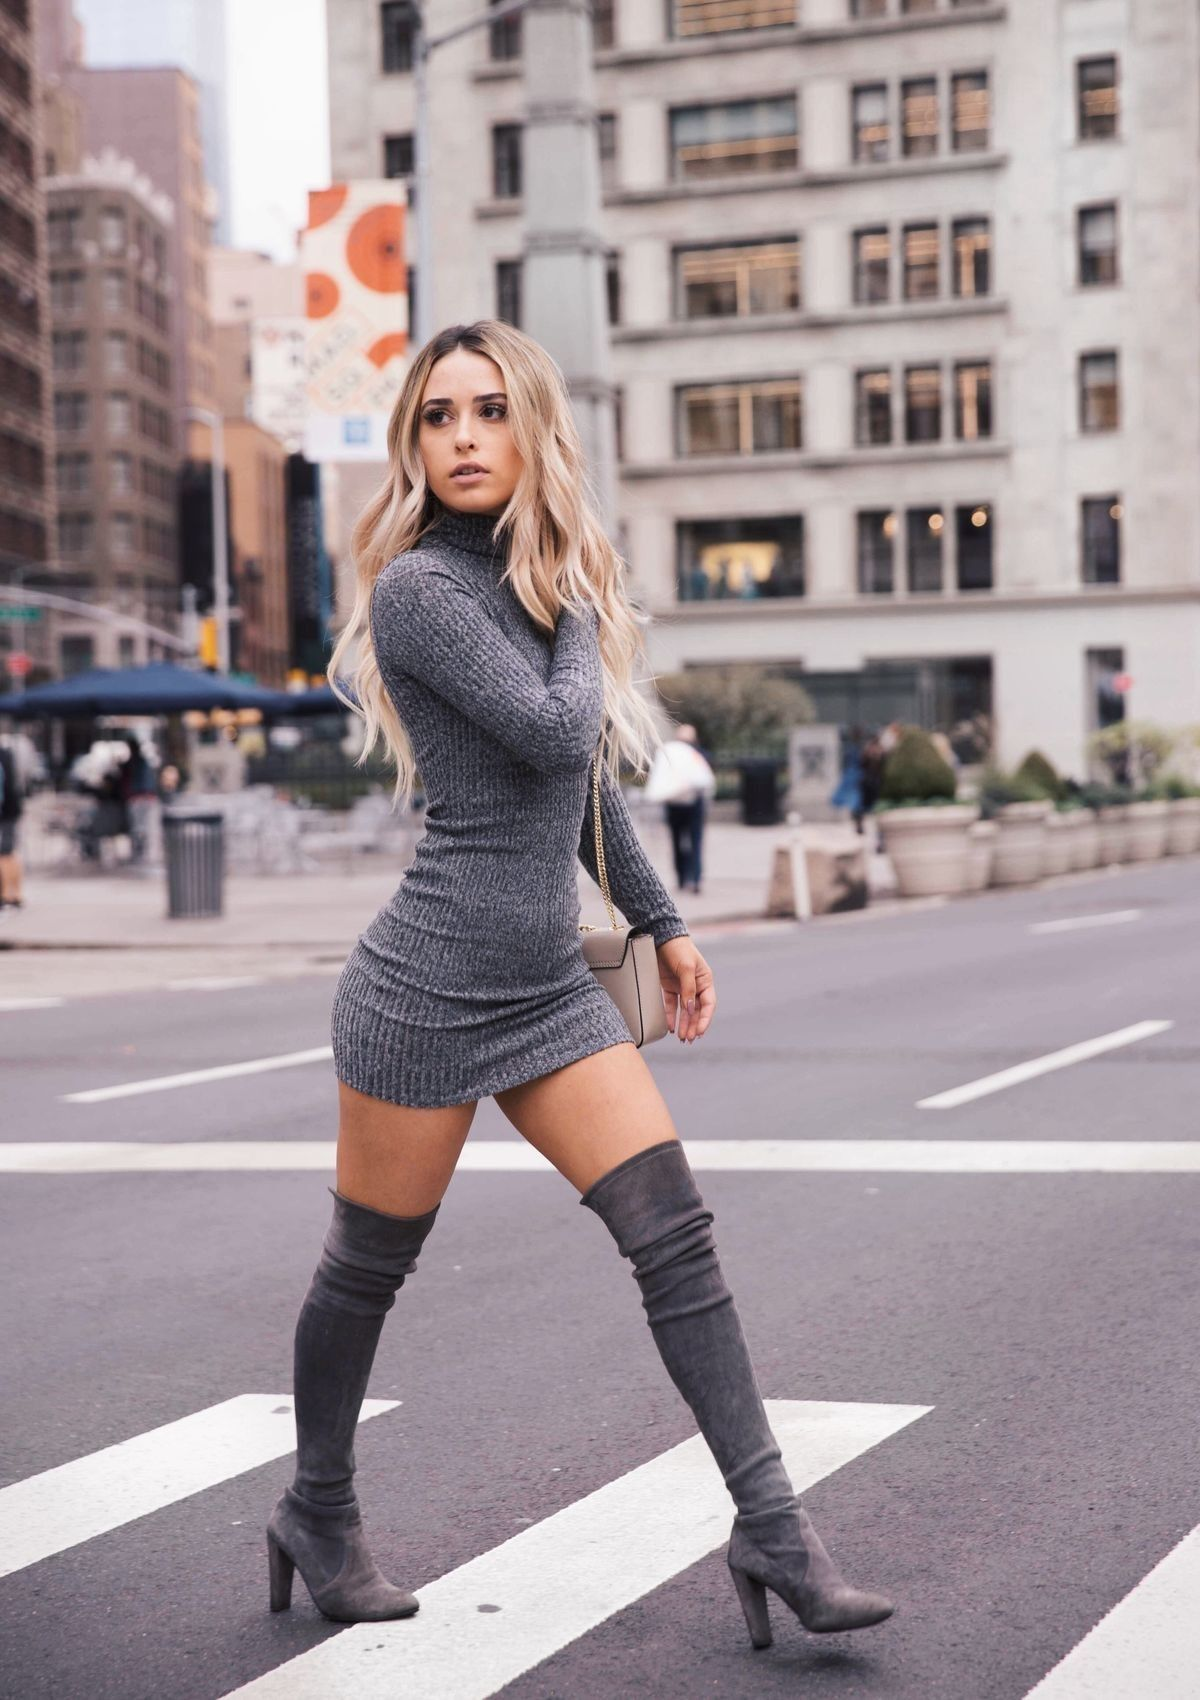 650e220cfd5 dress and thigh high boots - fall fashion.